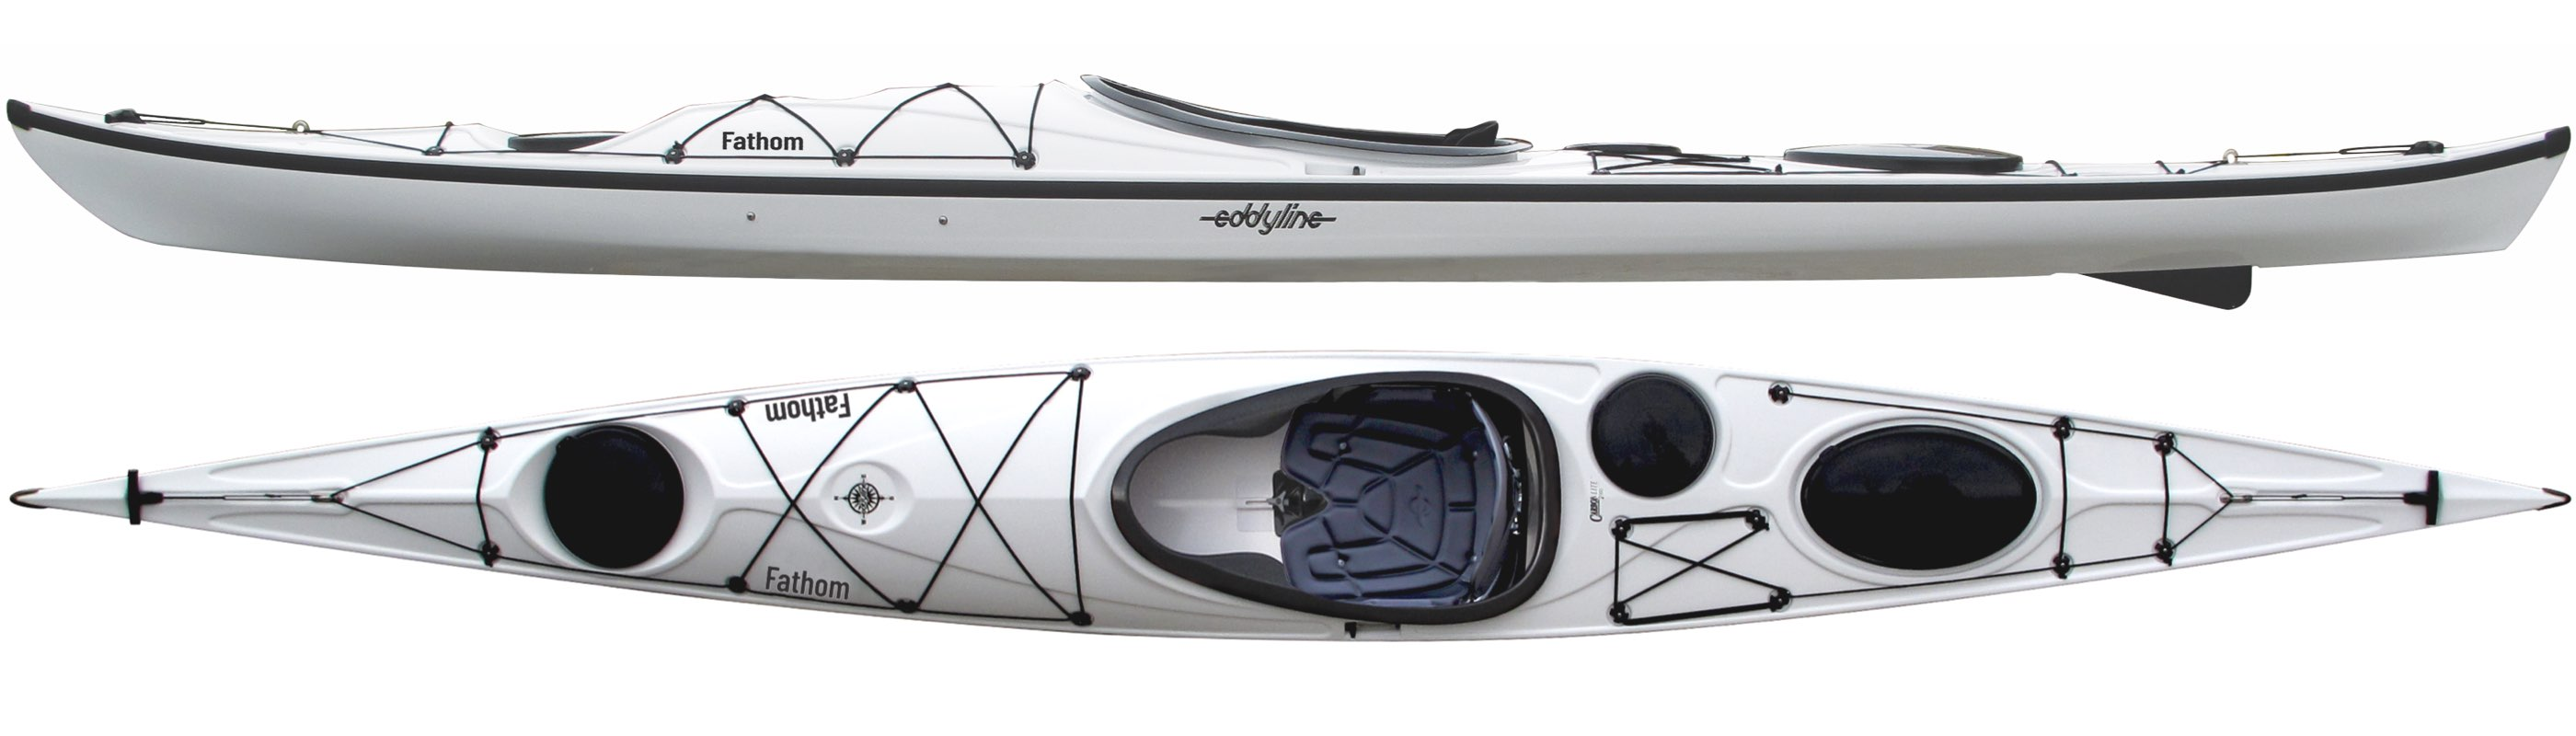 Kayaks: Fathom by Eddyline Kayaks - Image 2443